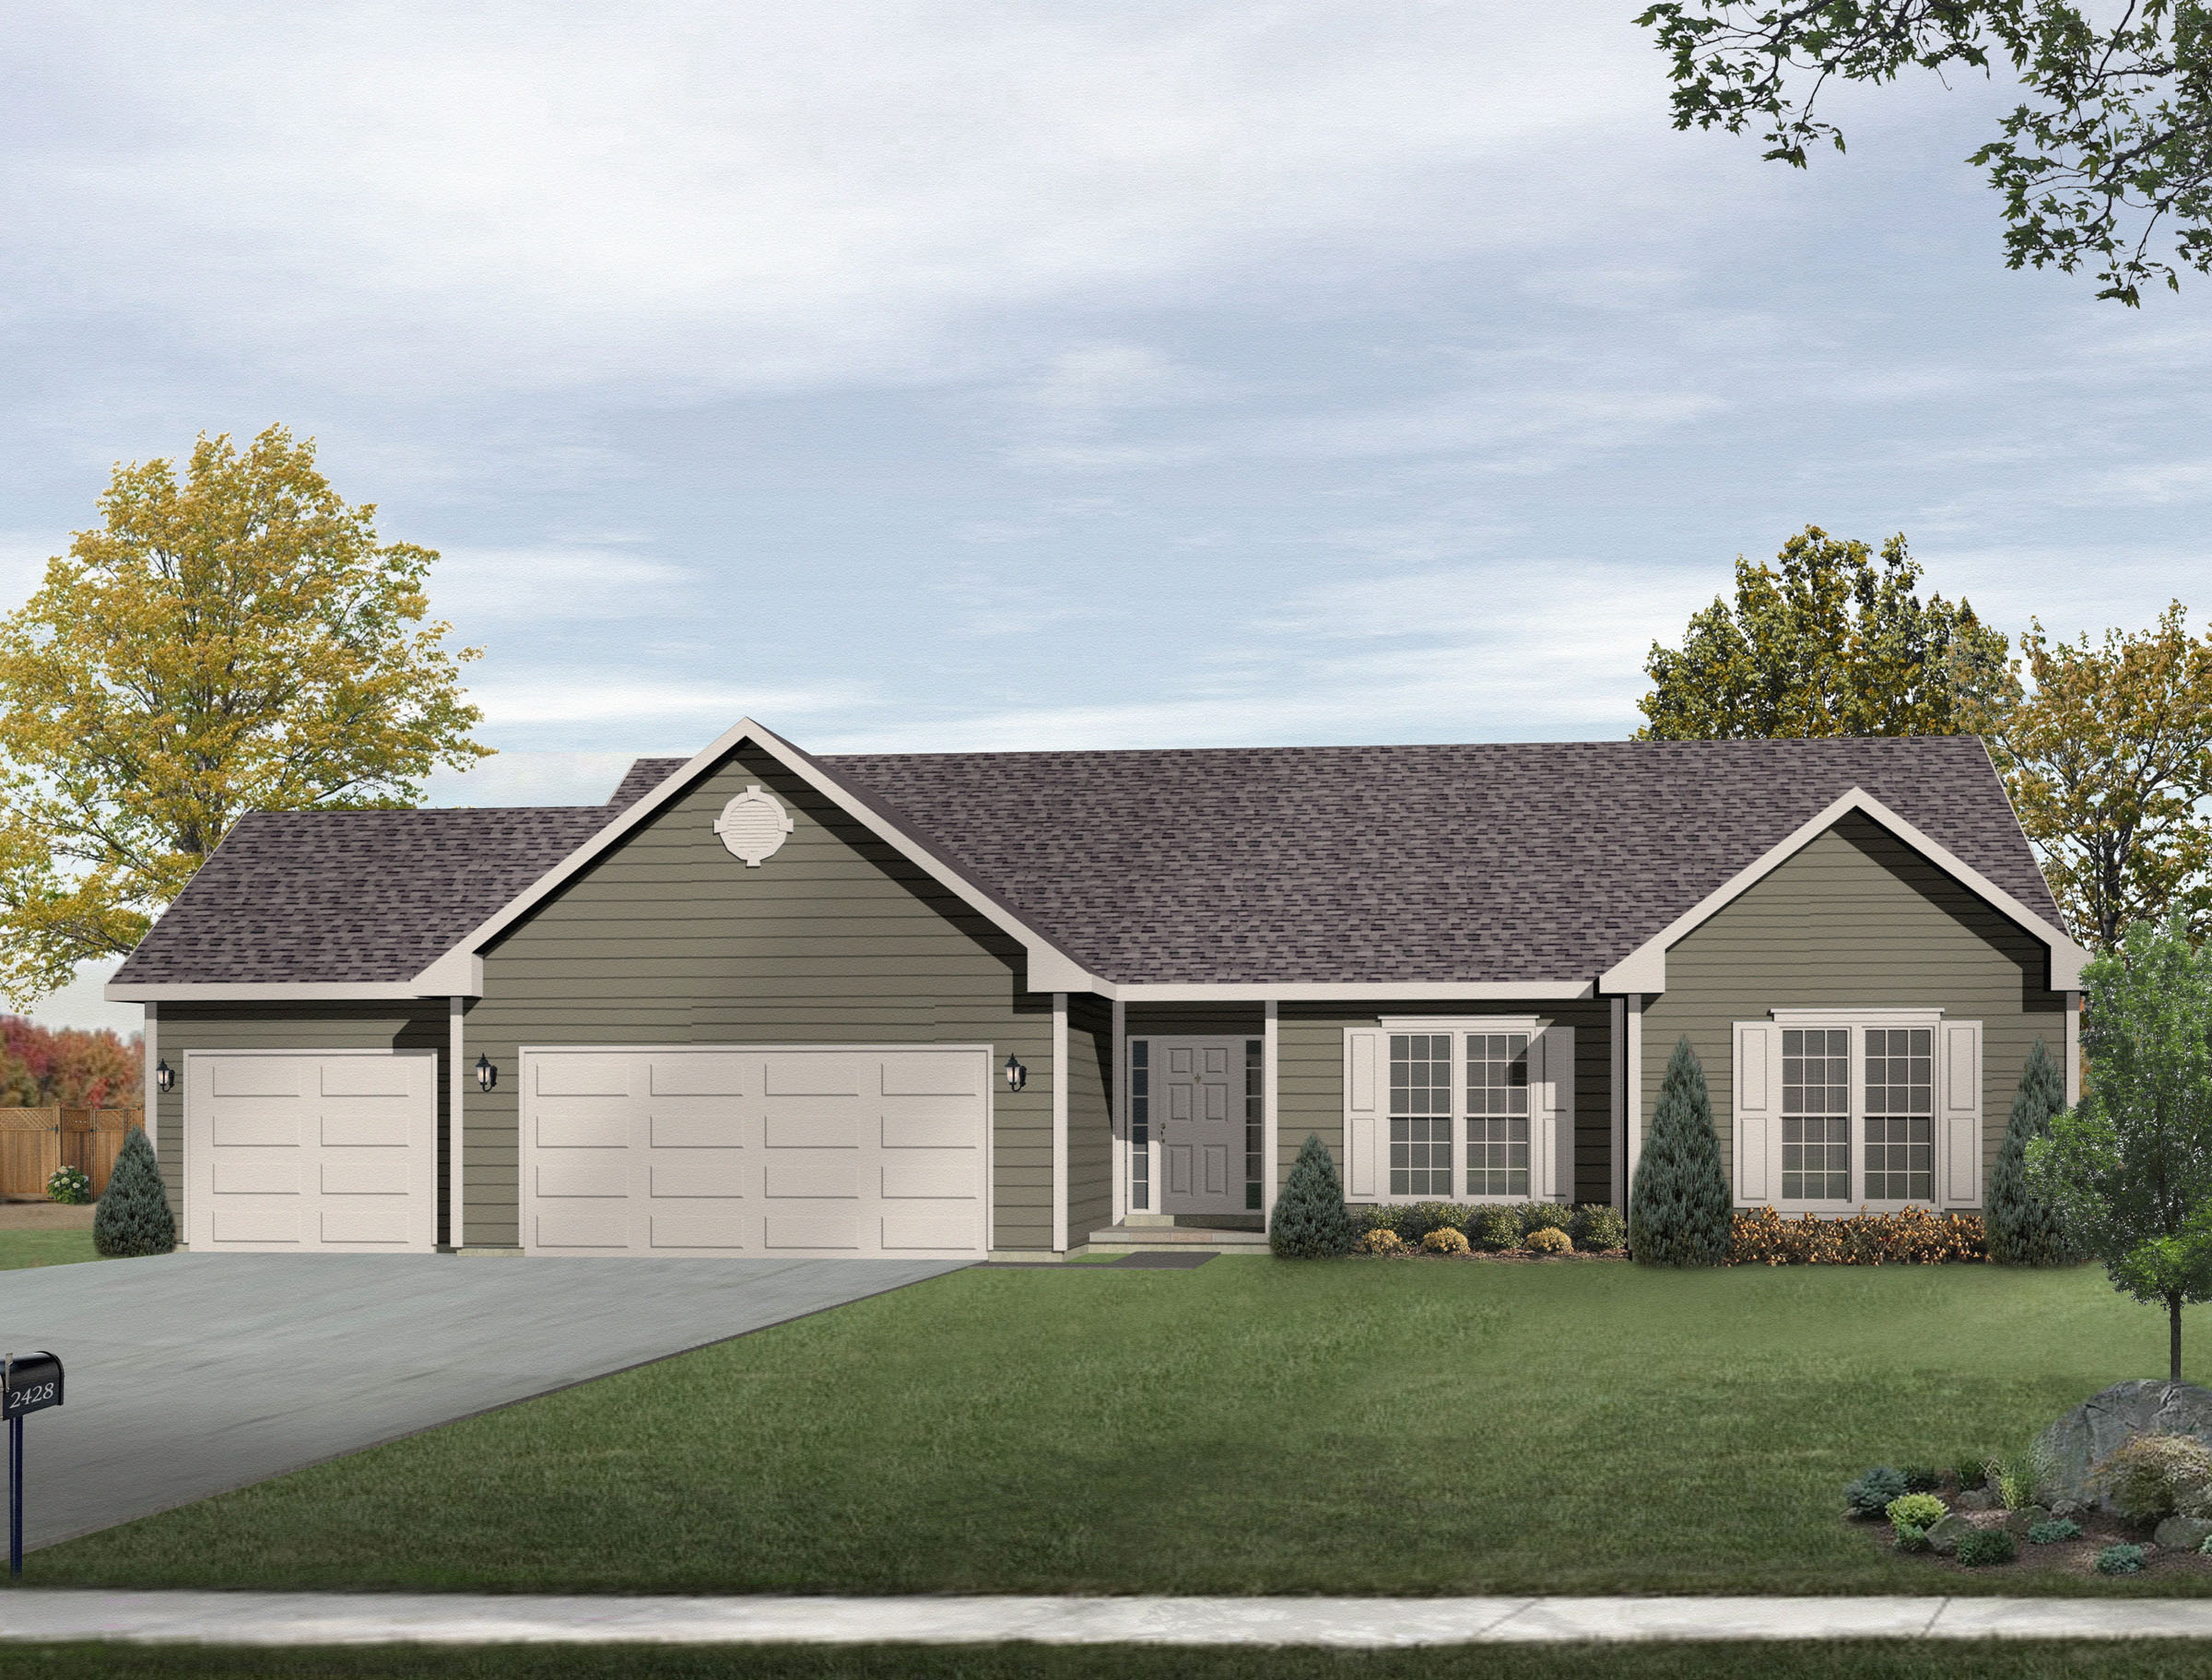 Ranch living with three car garage 2292sl for 3 car garage ranch home plans